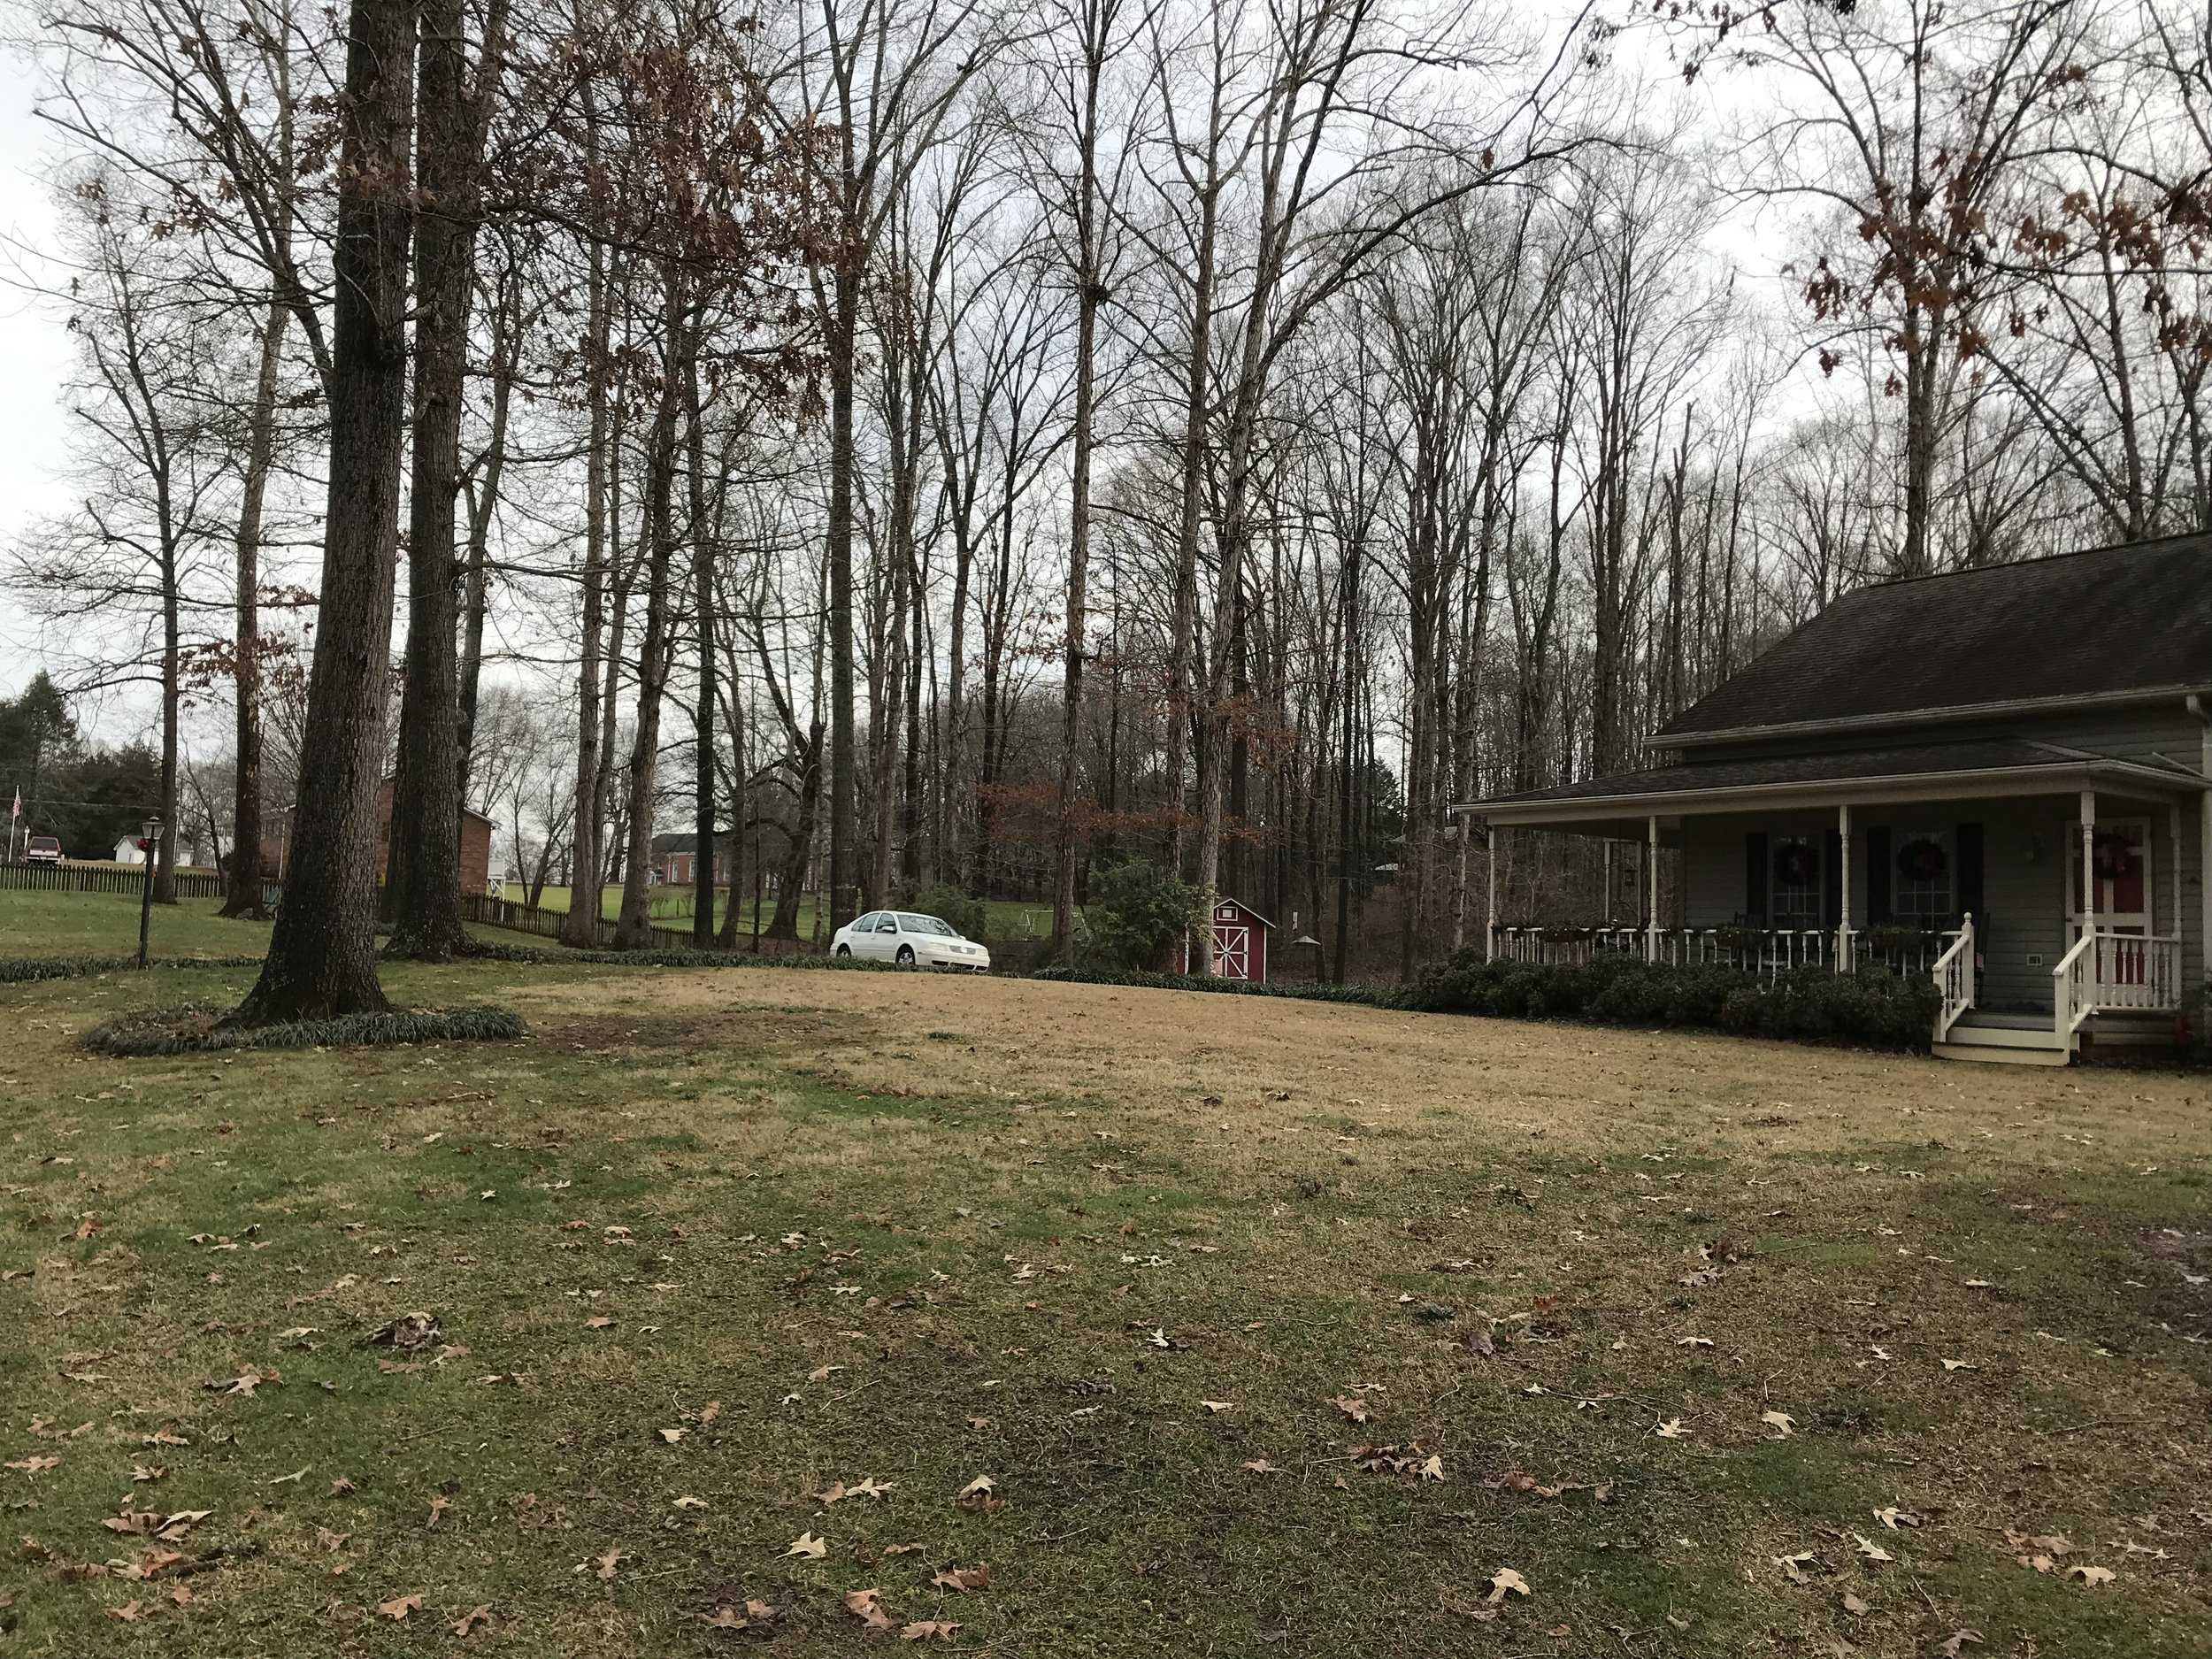 This is photo 16. Looking back towards the driveway from the northwest corner of the front yard.